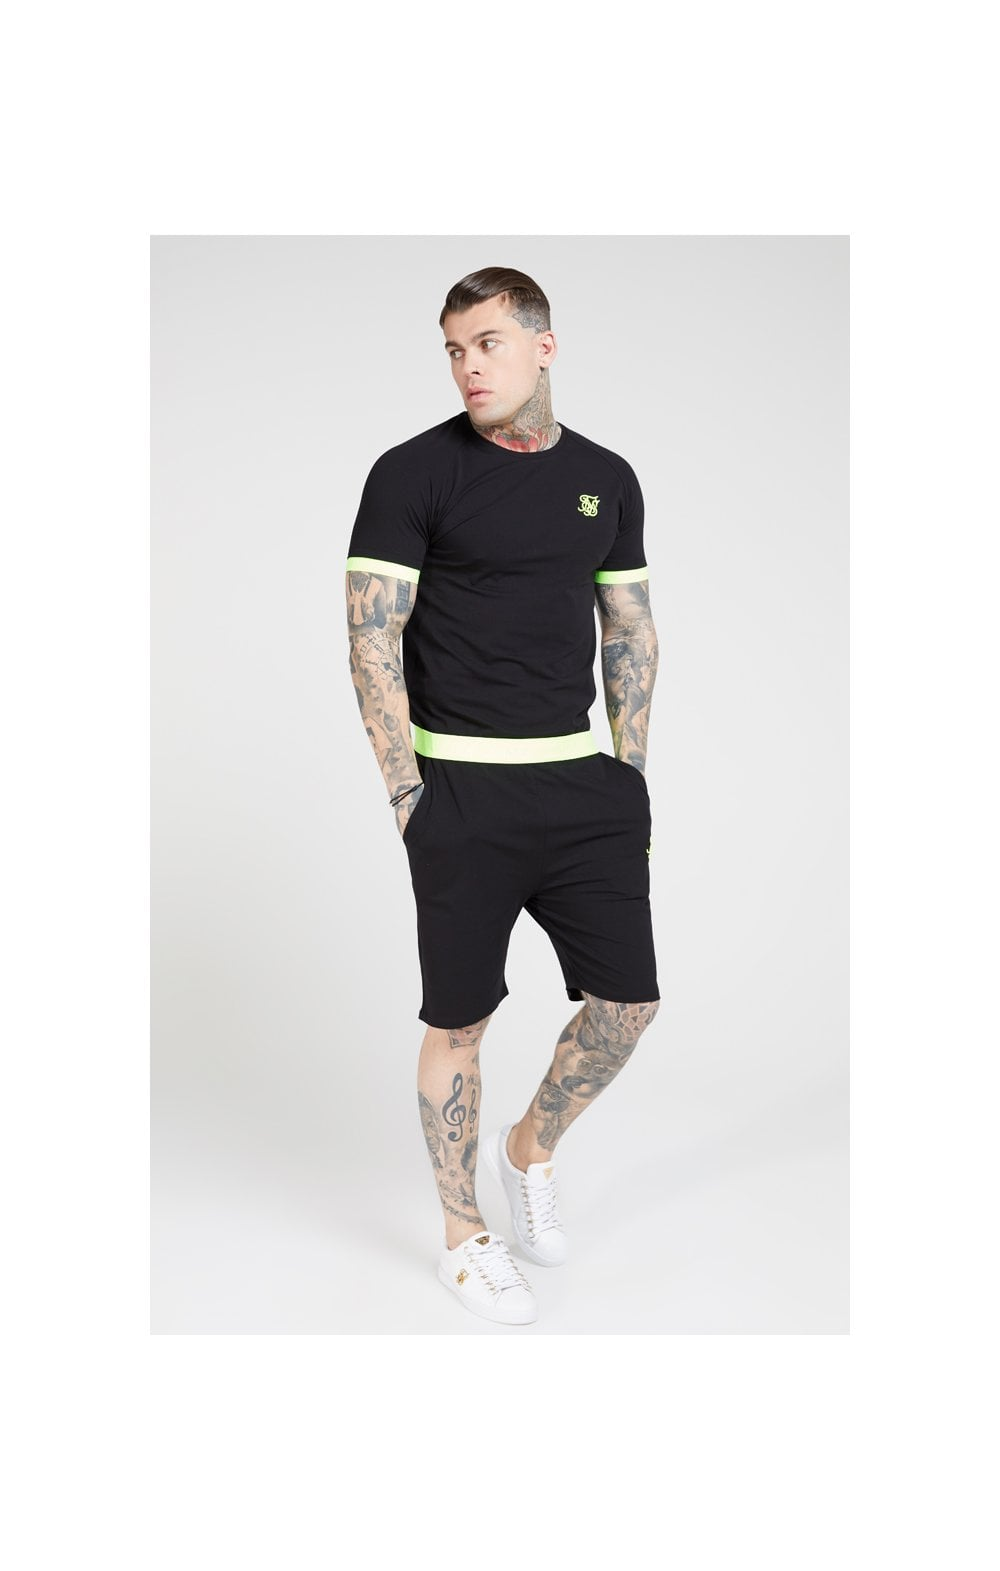 SikSilk S/S Neon Tech Tee – Black & Neon Yellow (4)